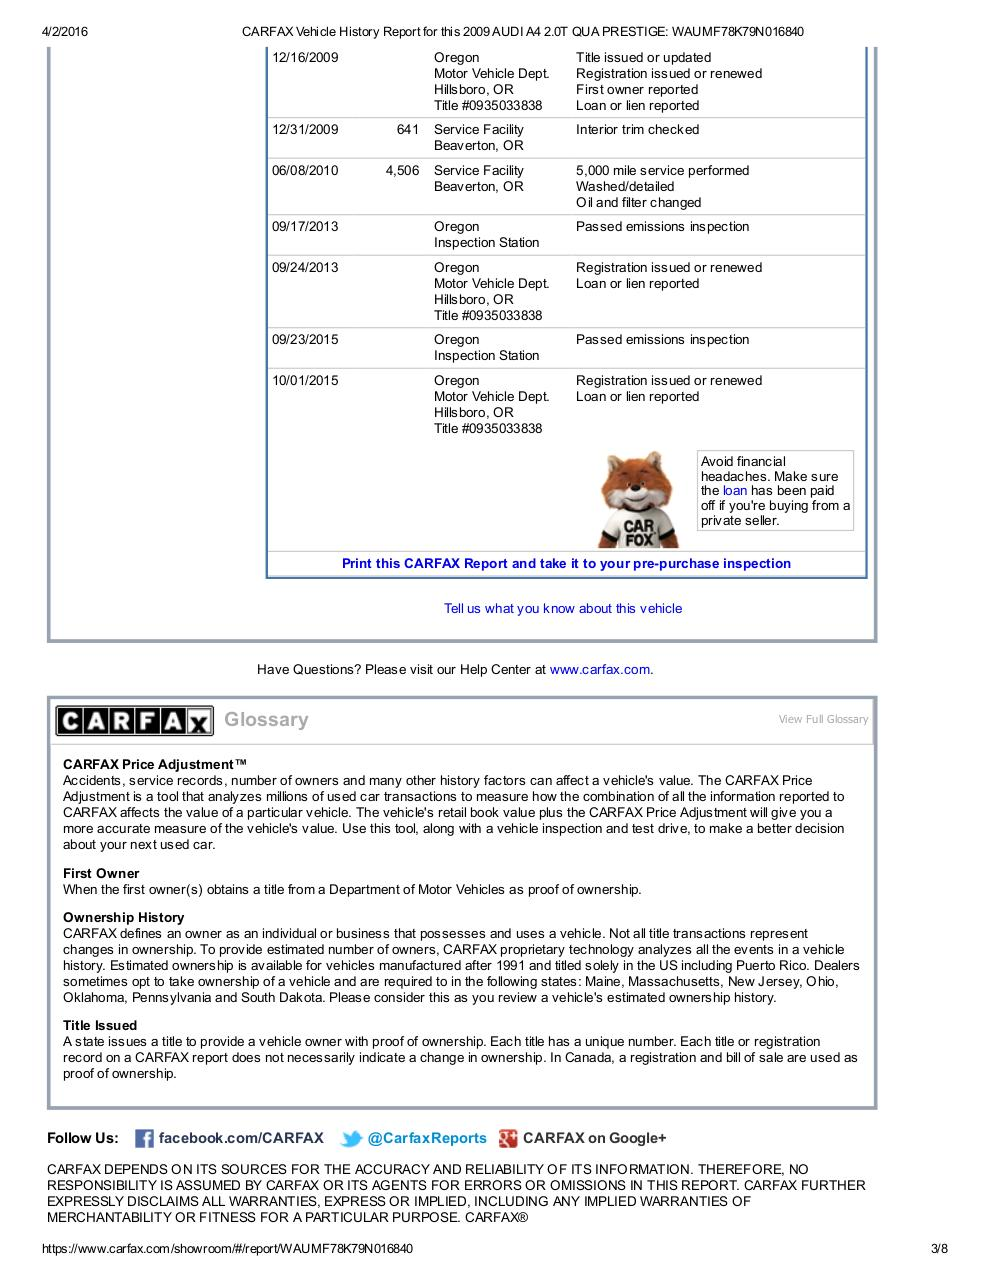 CARFAX Vehicle History Report for this 2009 AUDI A4 2.pdf - page 3/8